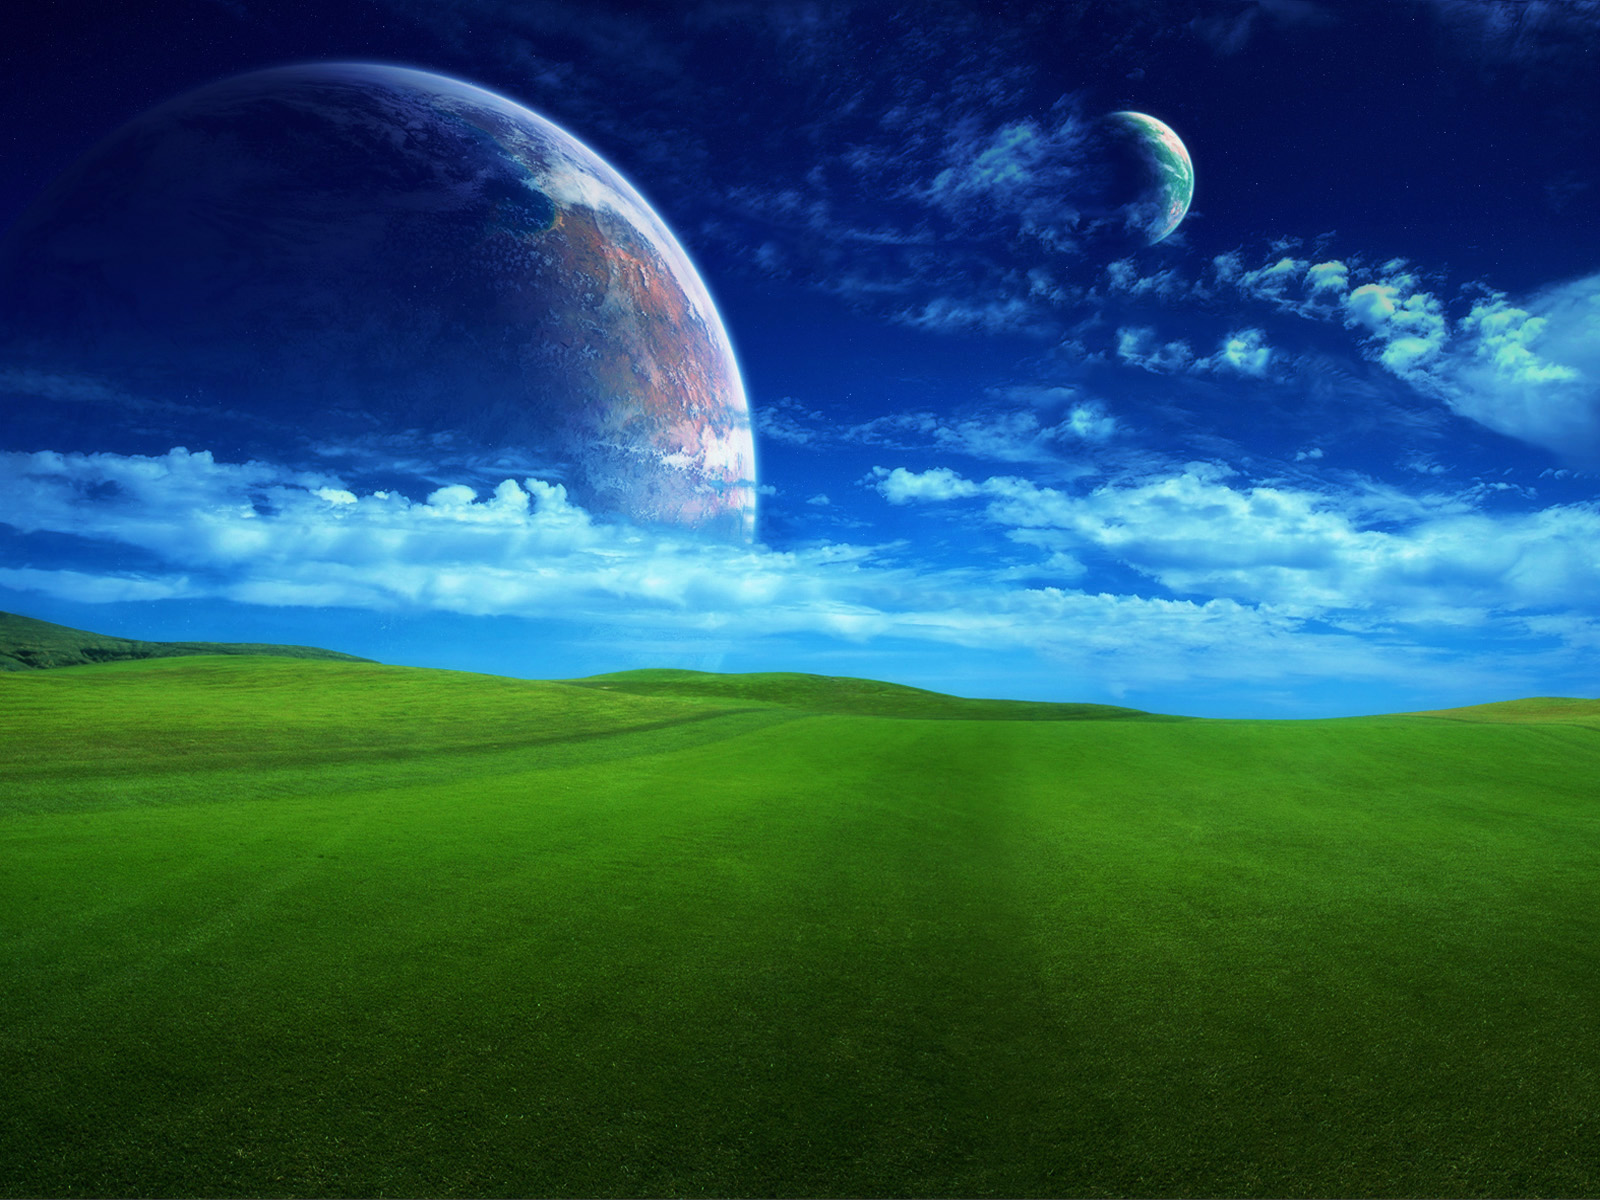 download desktop wallpaper another world - a very beautiful